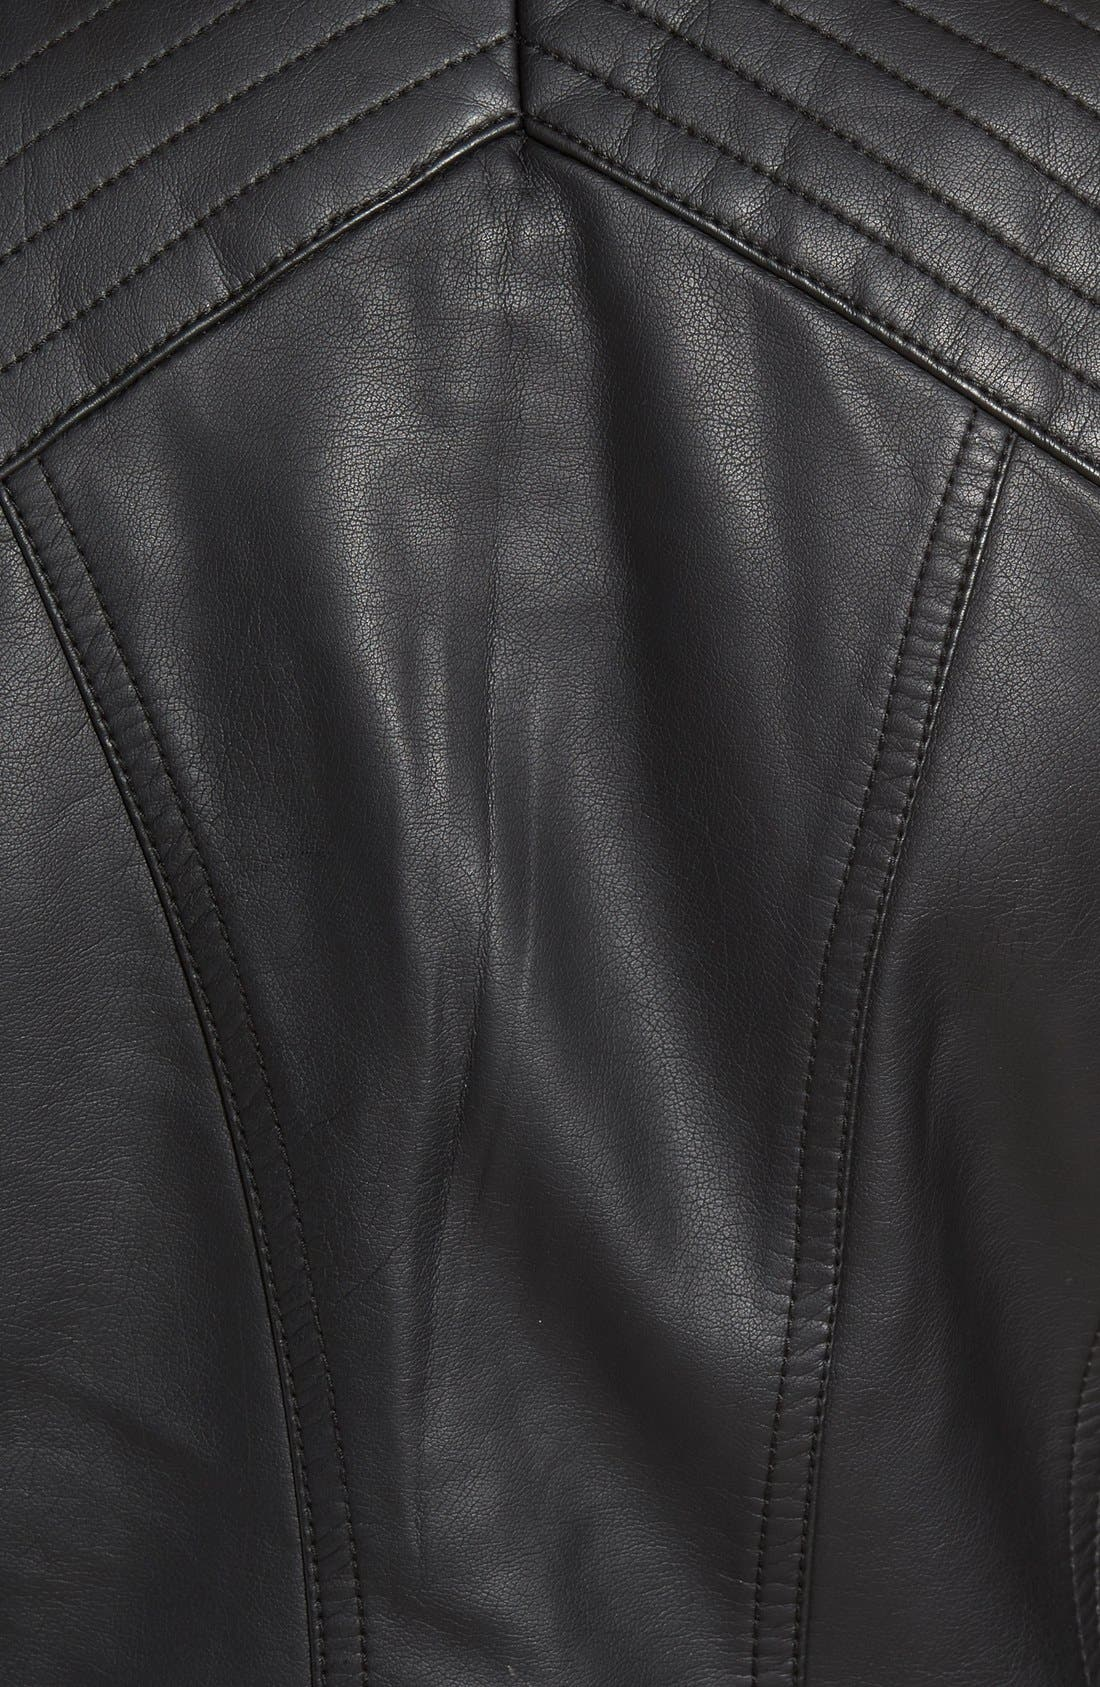 Quilted Faux Leather Jacket,                             Alternate thumbnail 5, color,                             001